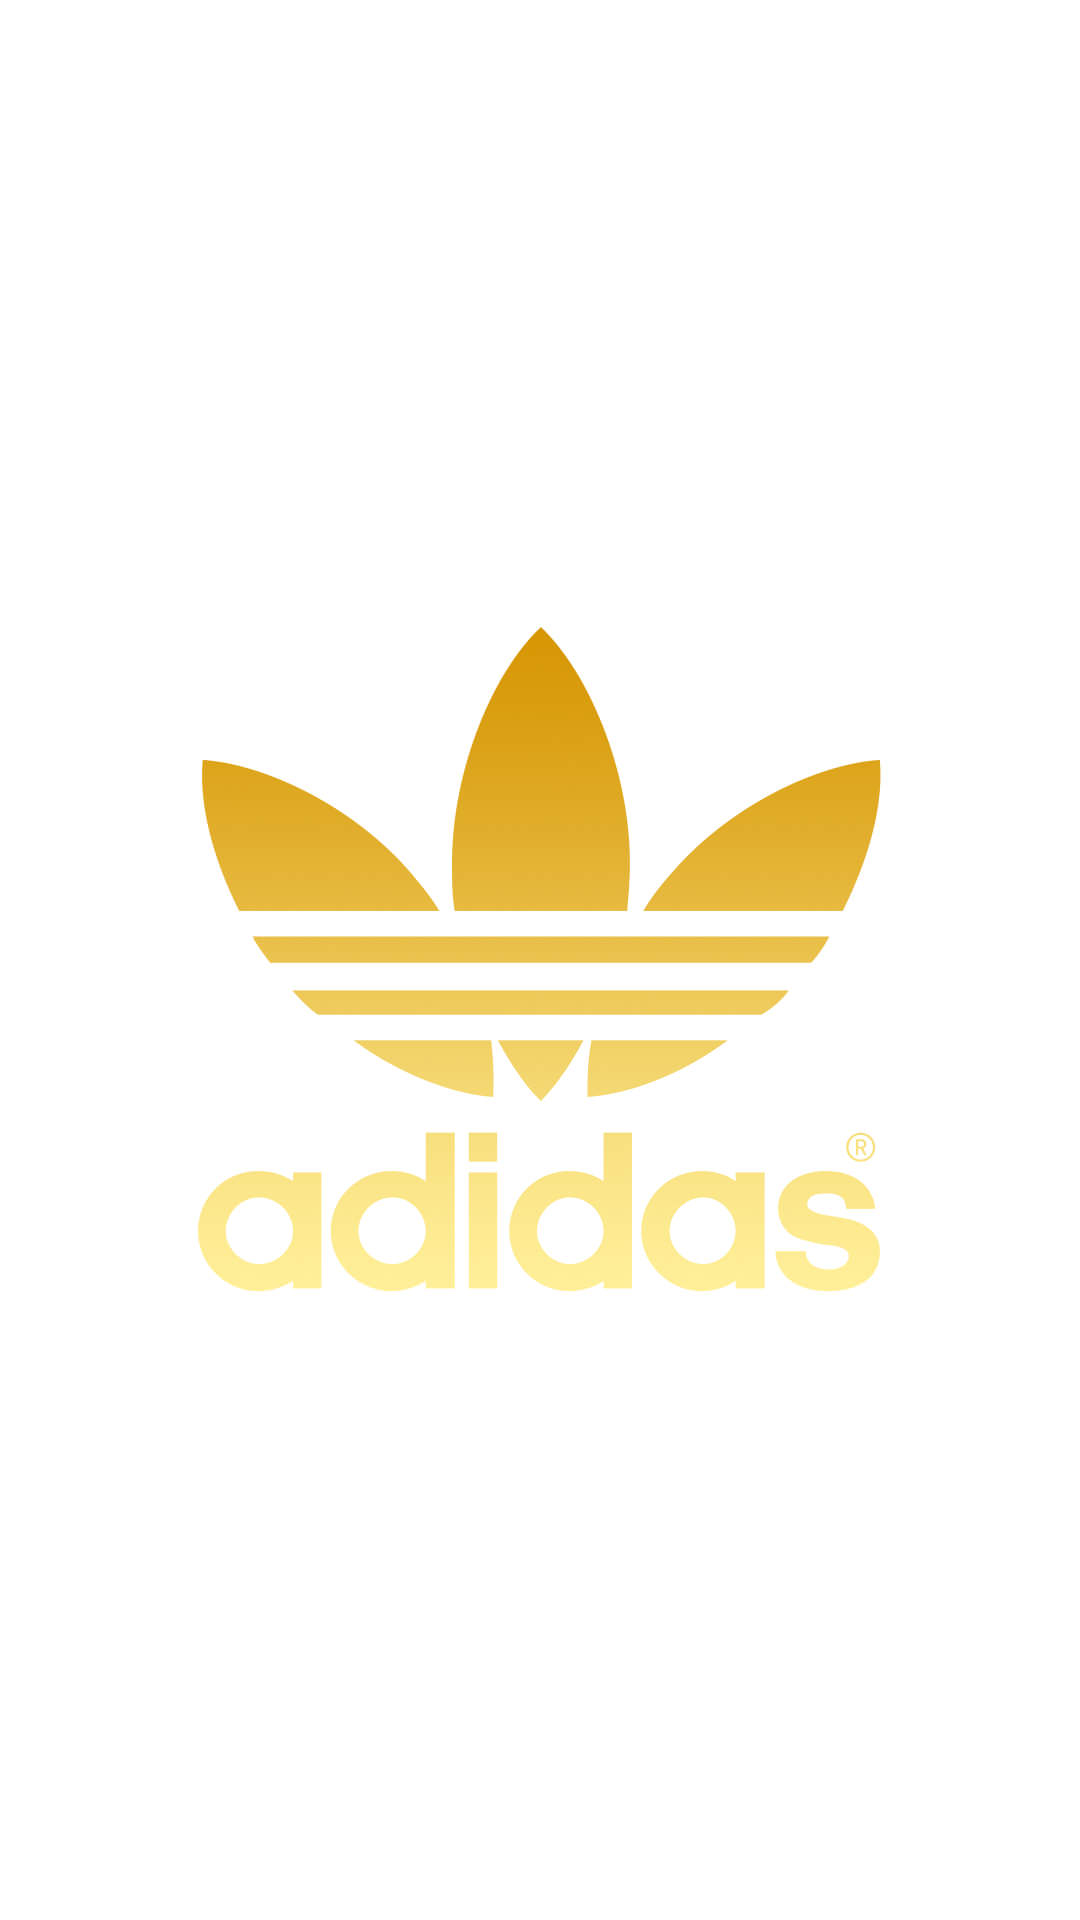 wallpaper adidas iphone 6